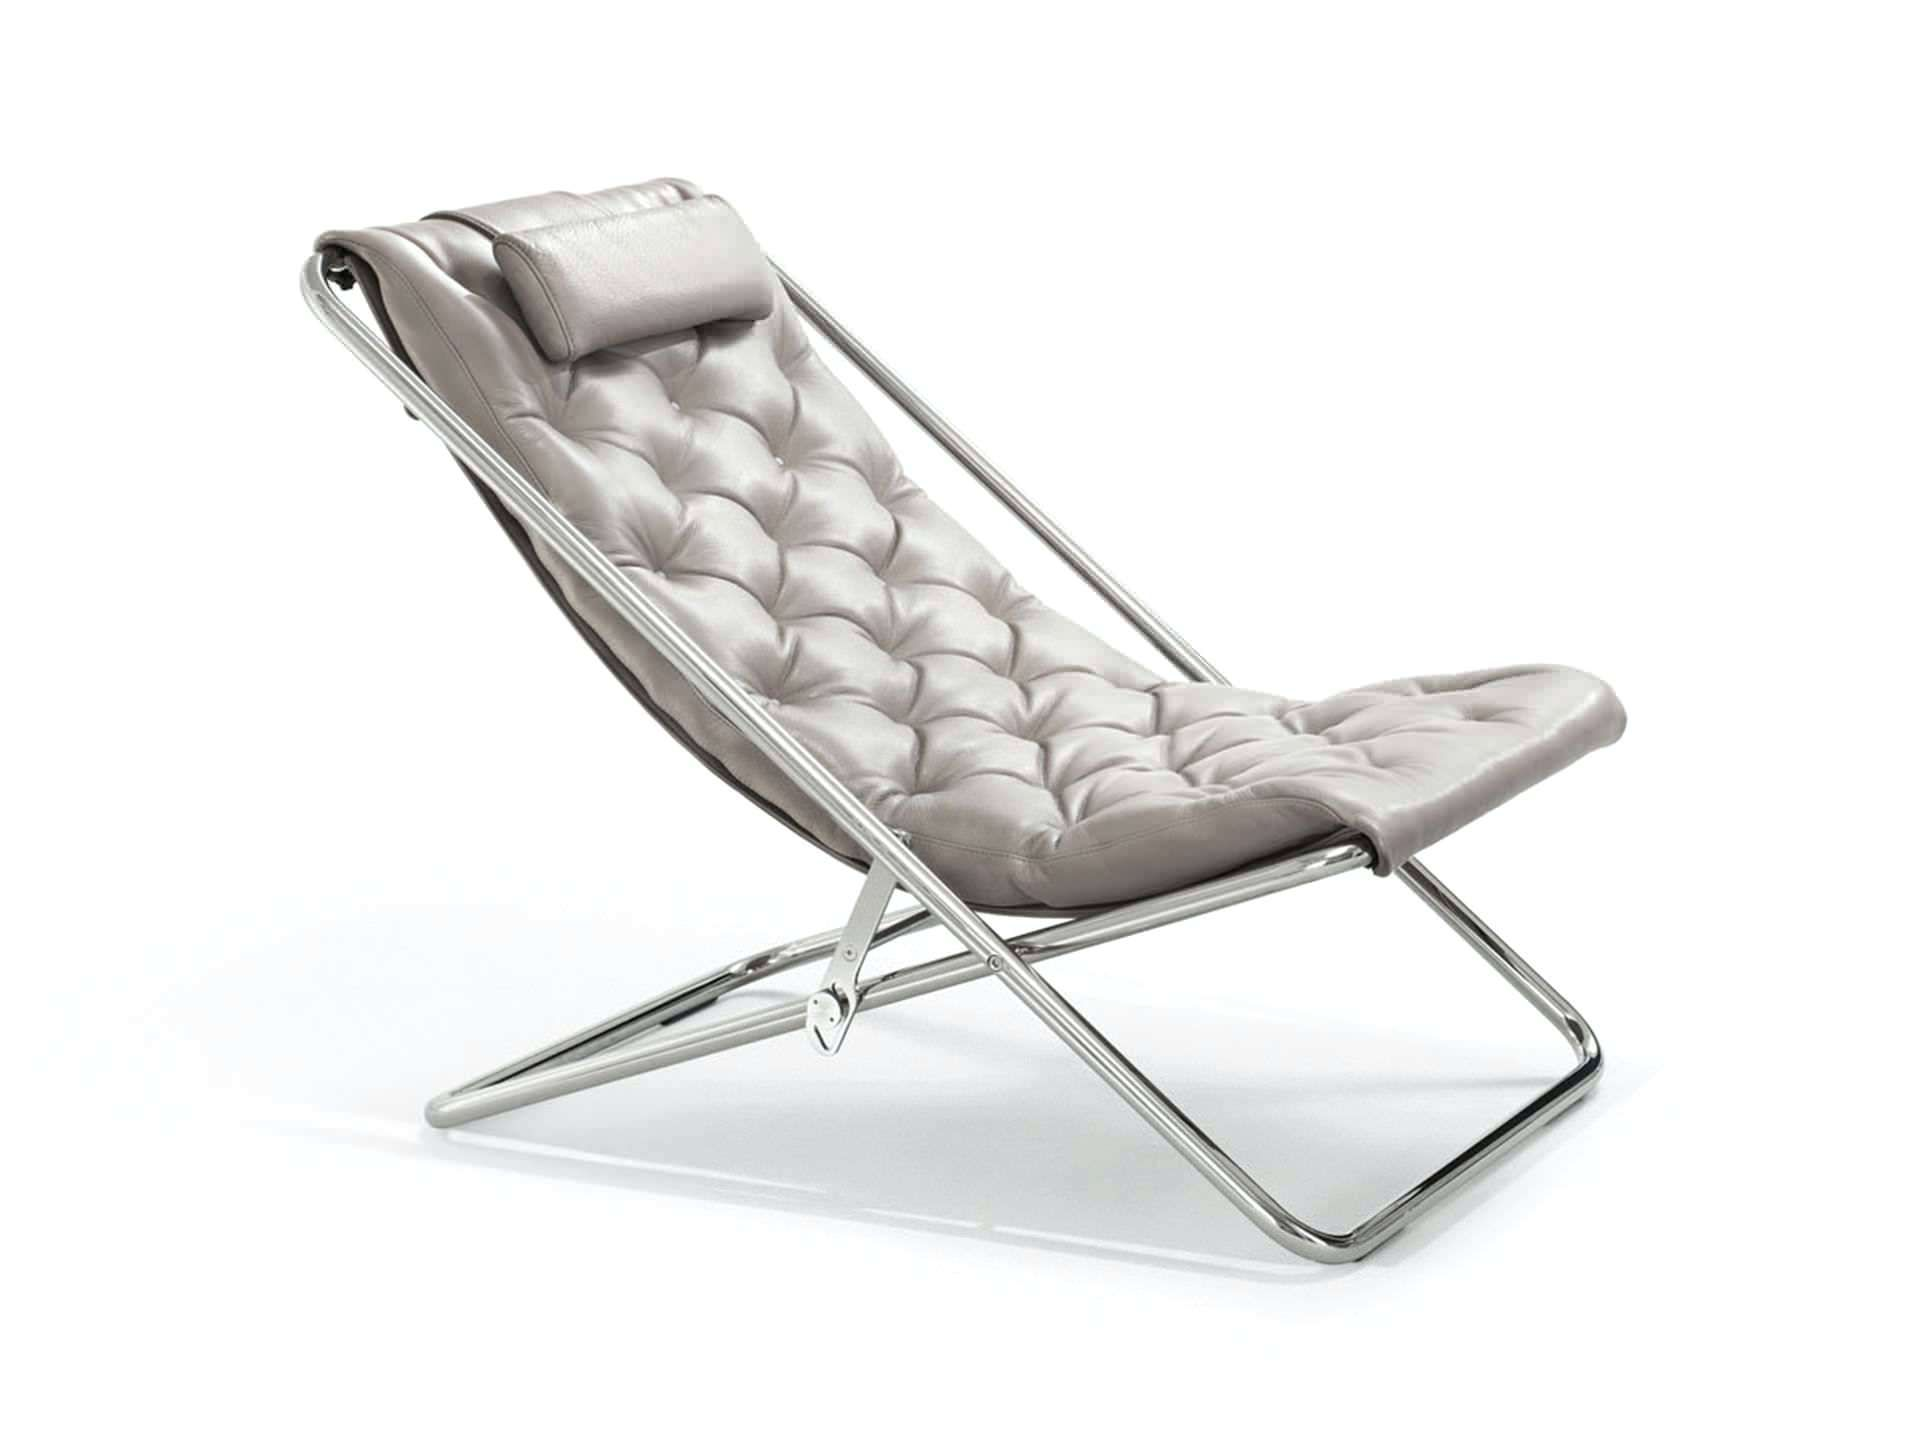 Fold Up Portable Lounge Chairs Indoor Chairs Lounge Chair Folding Lounge Chair